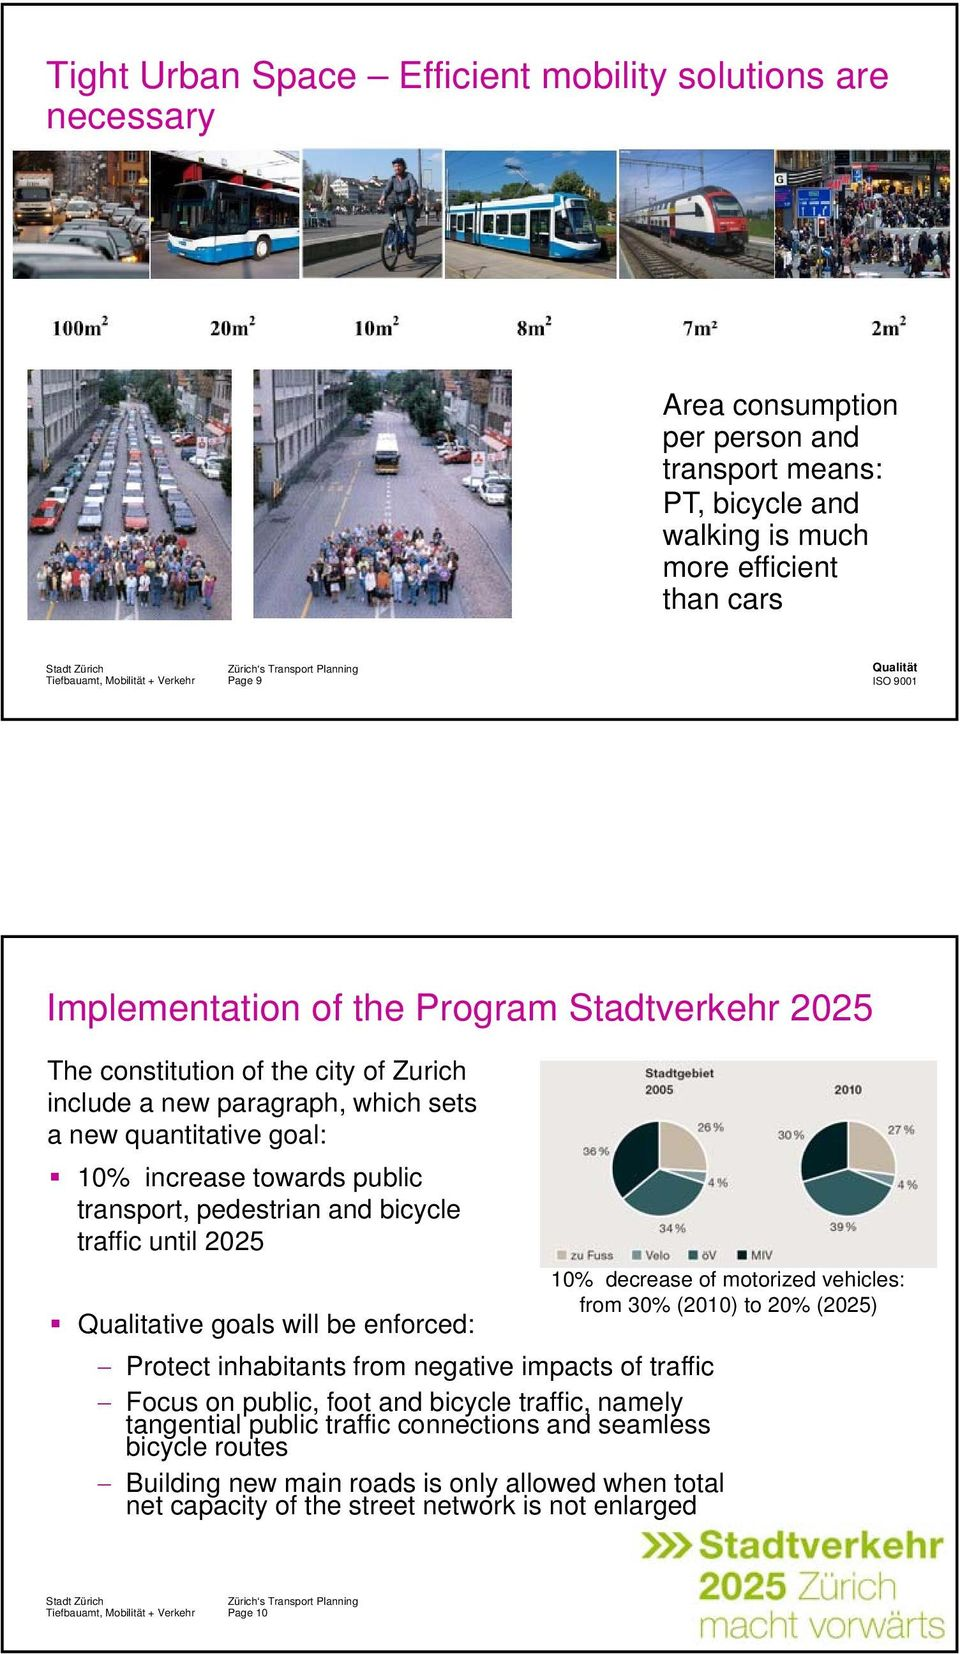 until 2025 Qualitative goals will be enforced: 10% decrease of motorized vehicles: from 30% (2010) to 20% (2025) Protect inhabitants from negative impacts of traffic Focus on public, foot and